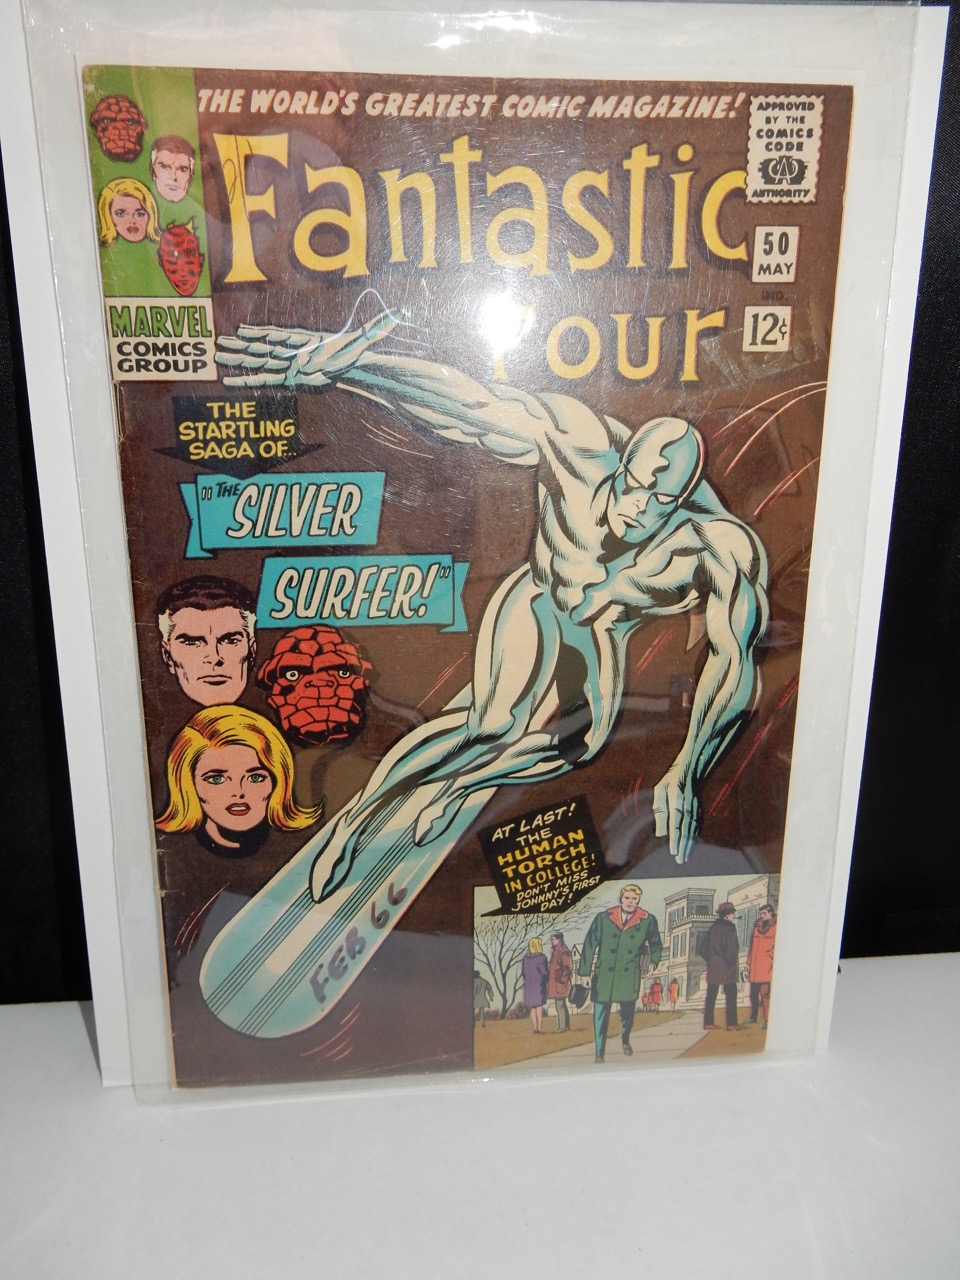 Fantastic Four #50 with Silver Surfer